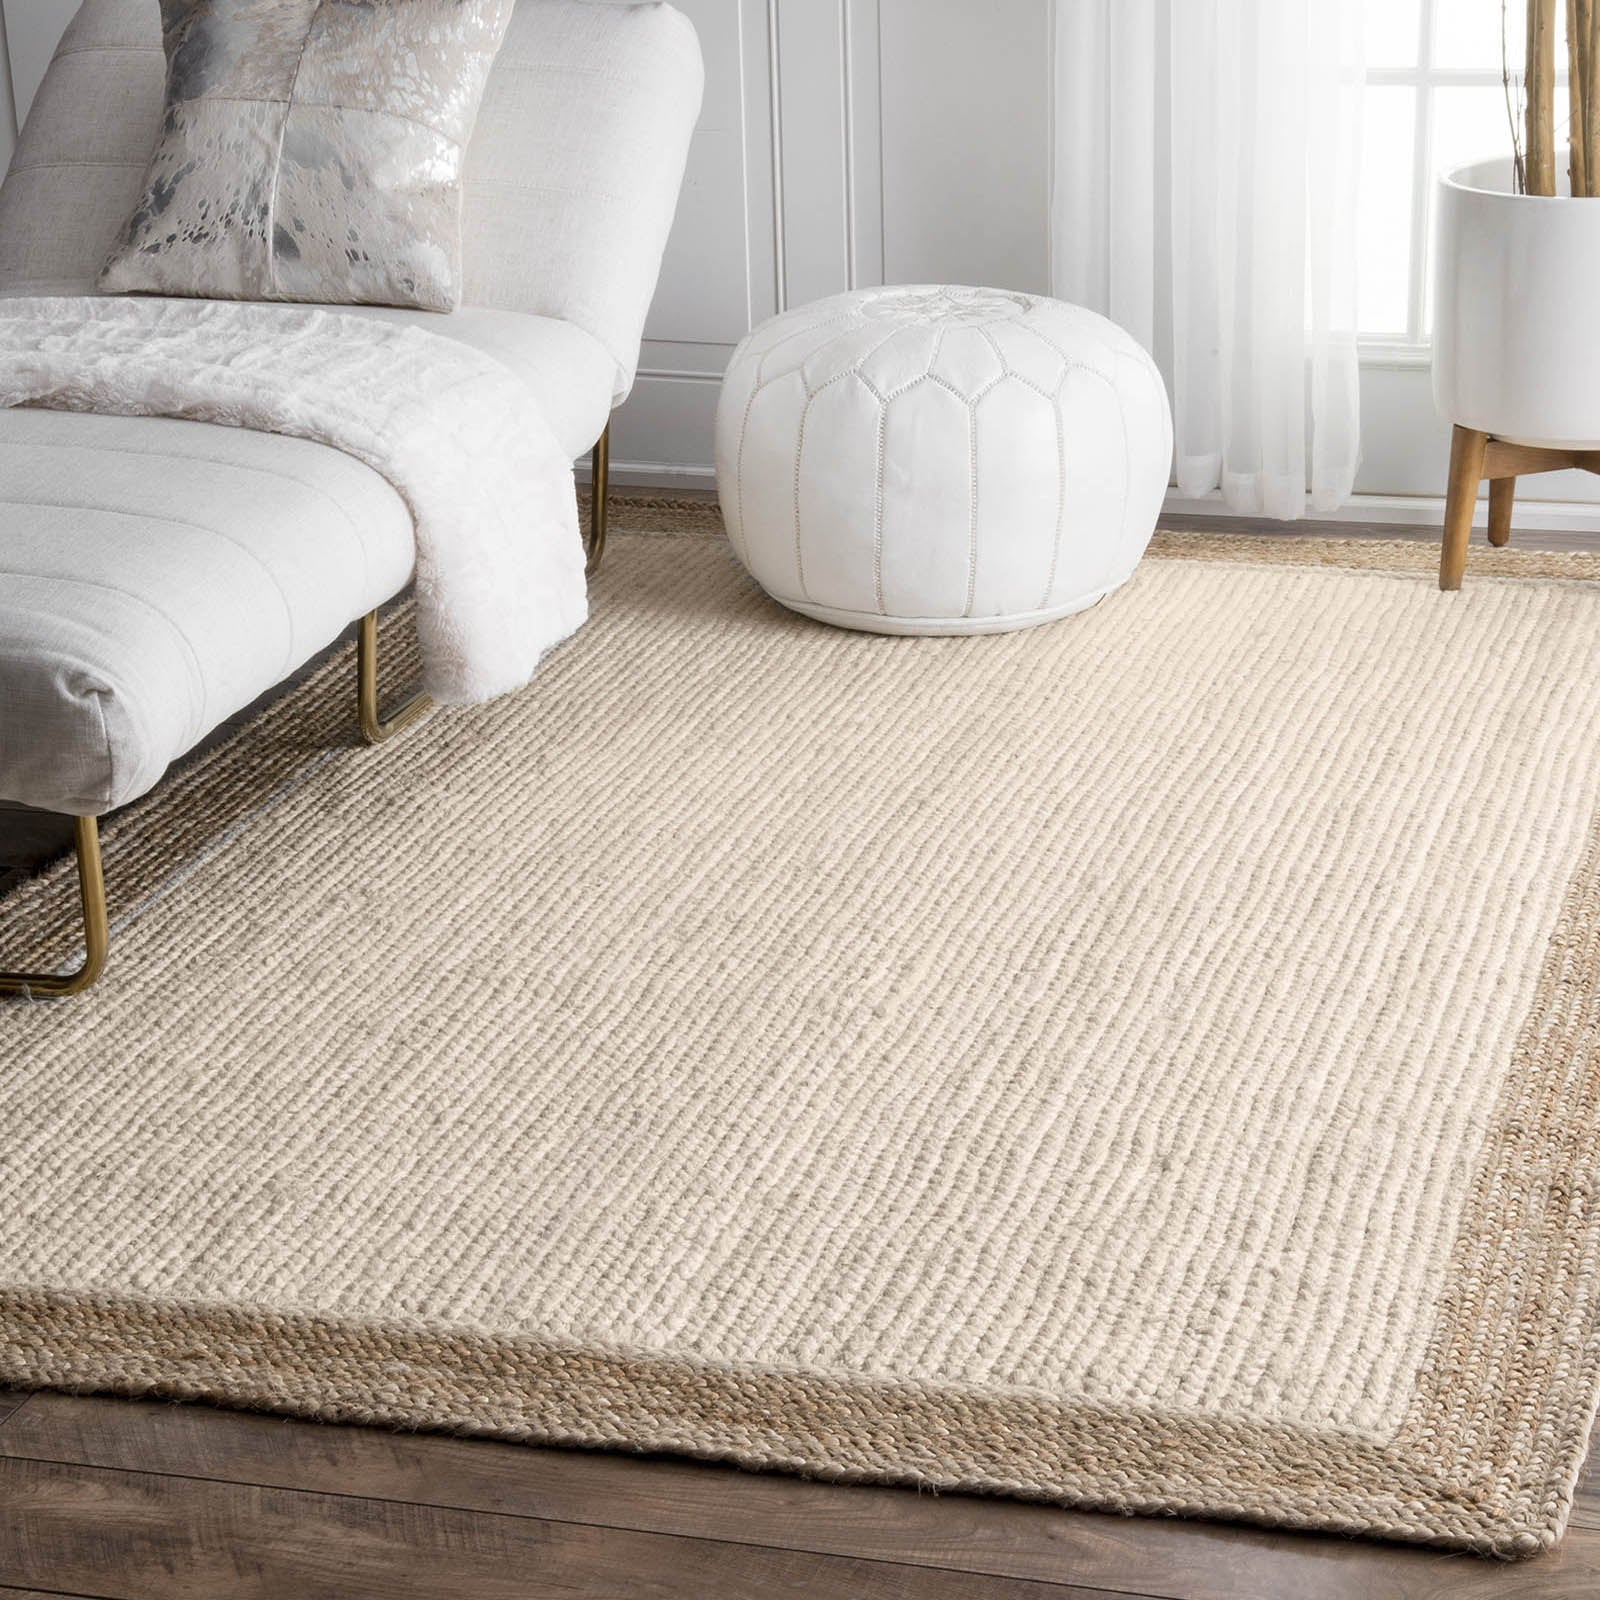 60X90 cm Braided Handmade Jute Rug Braided-001xs